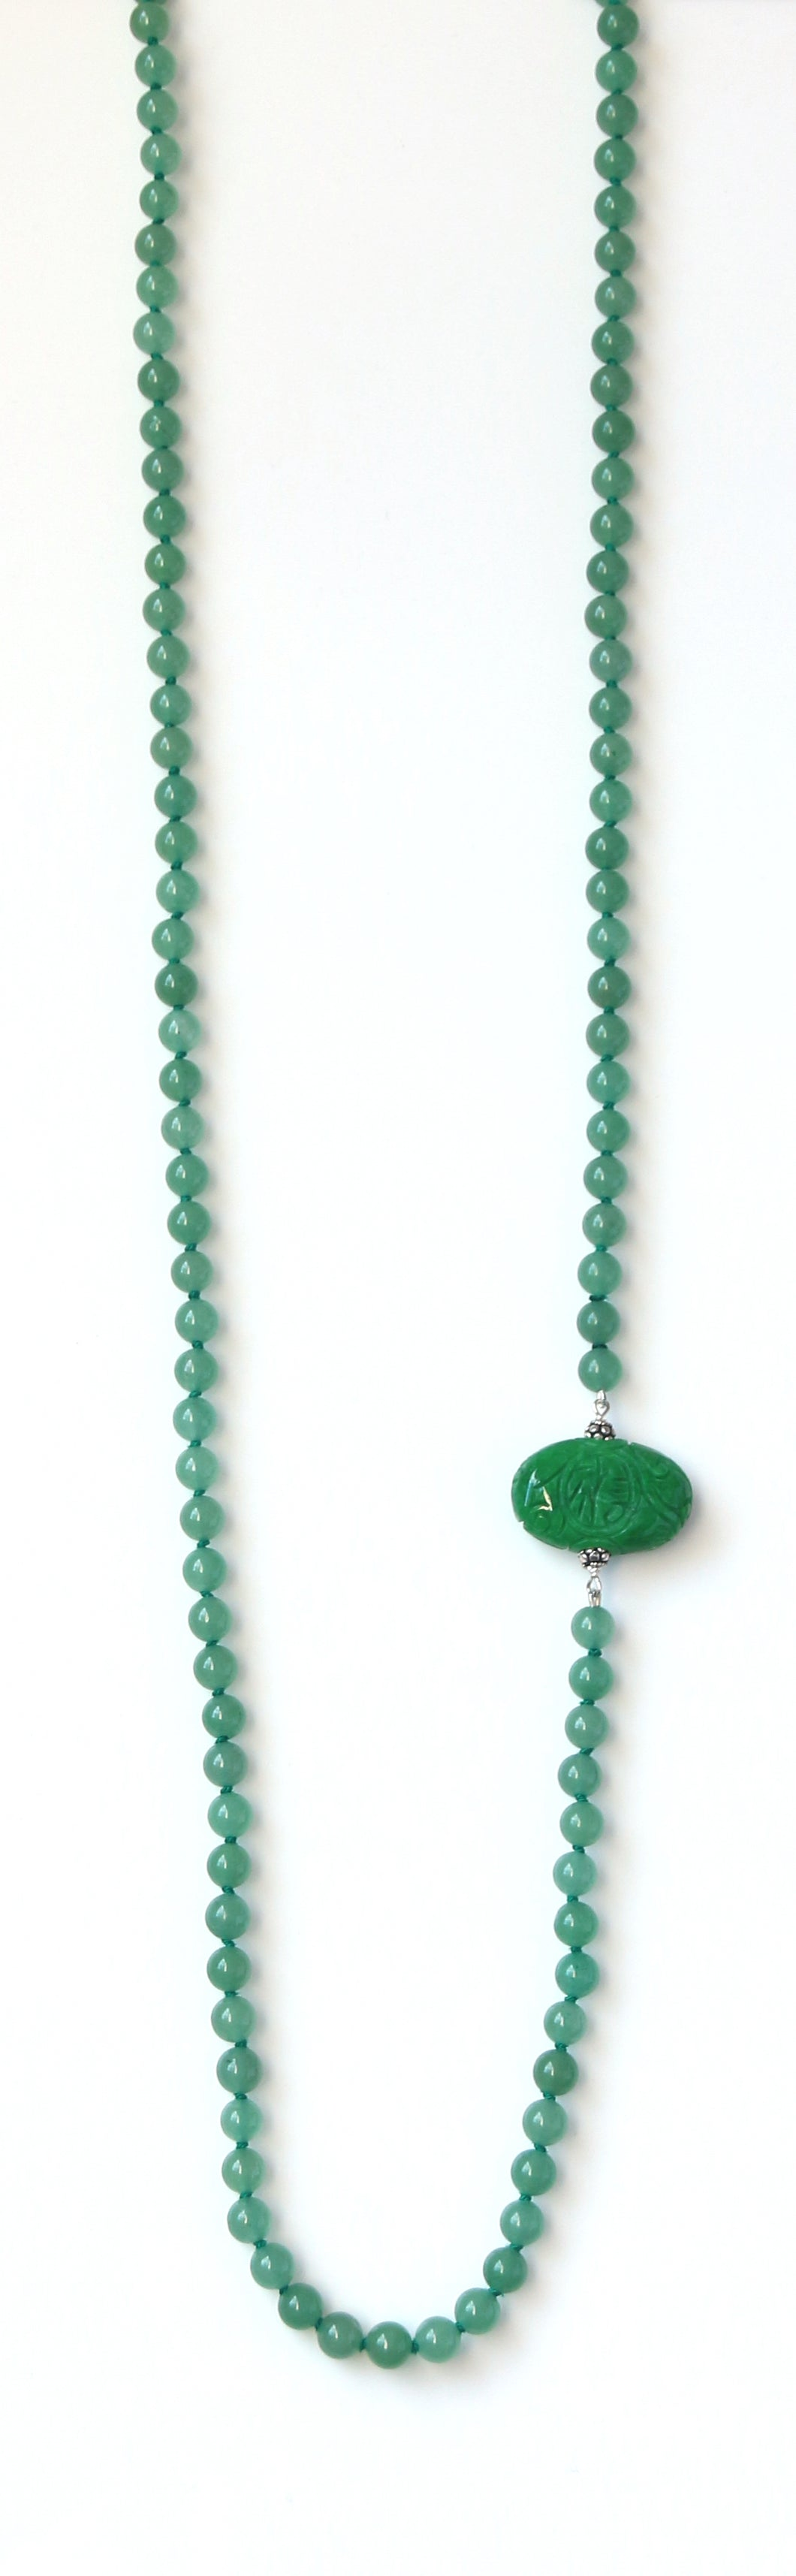 Australian Handmade Green Long Necklace with Jade Side Piece